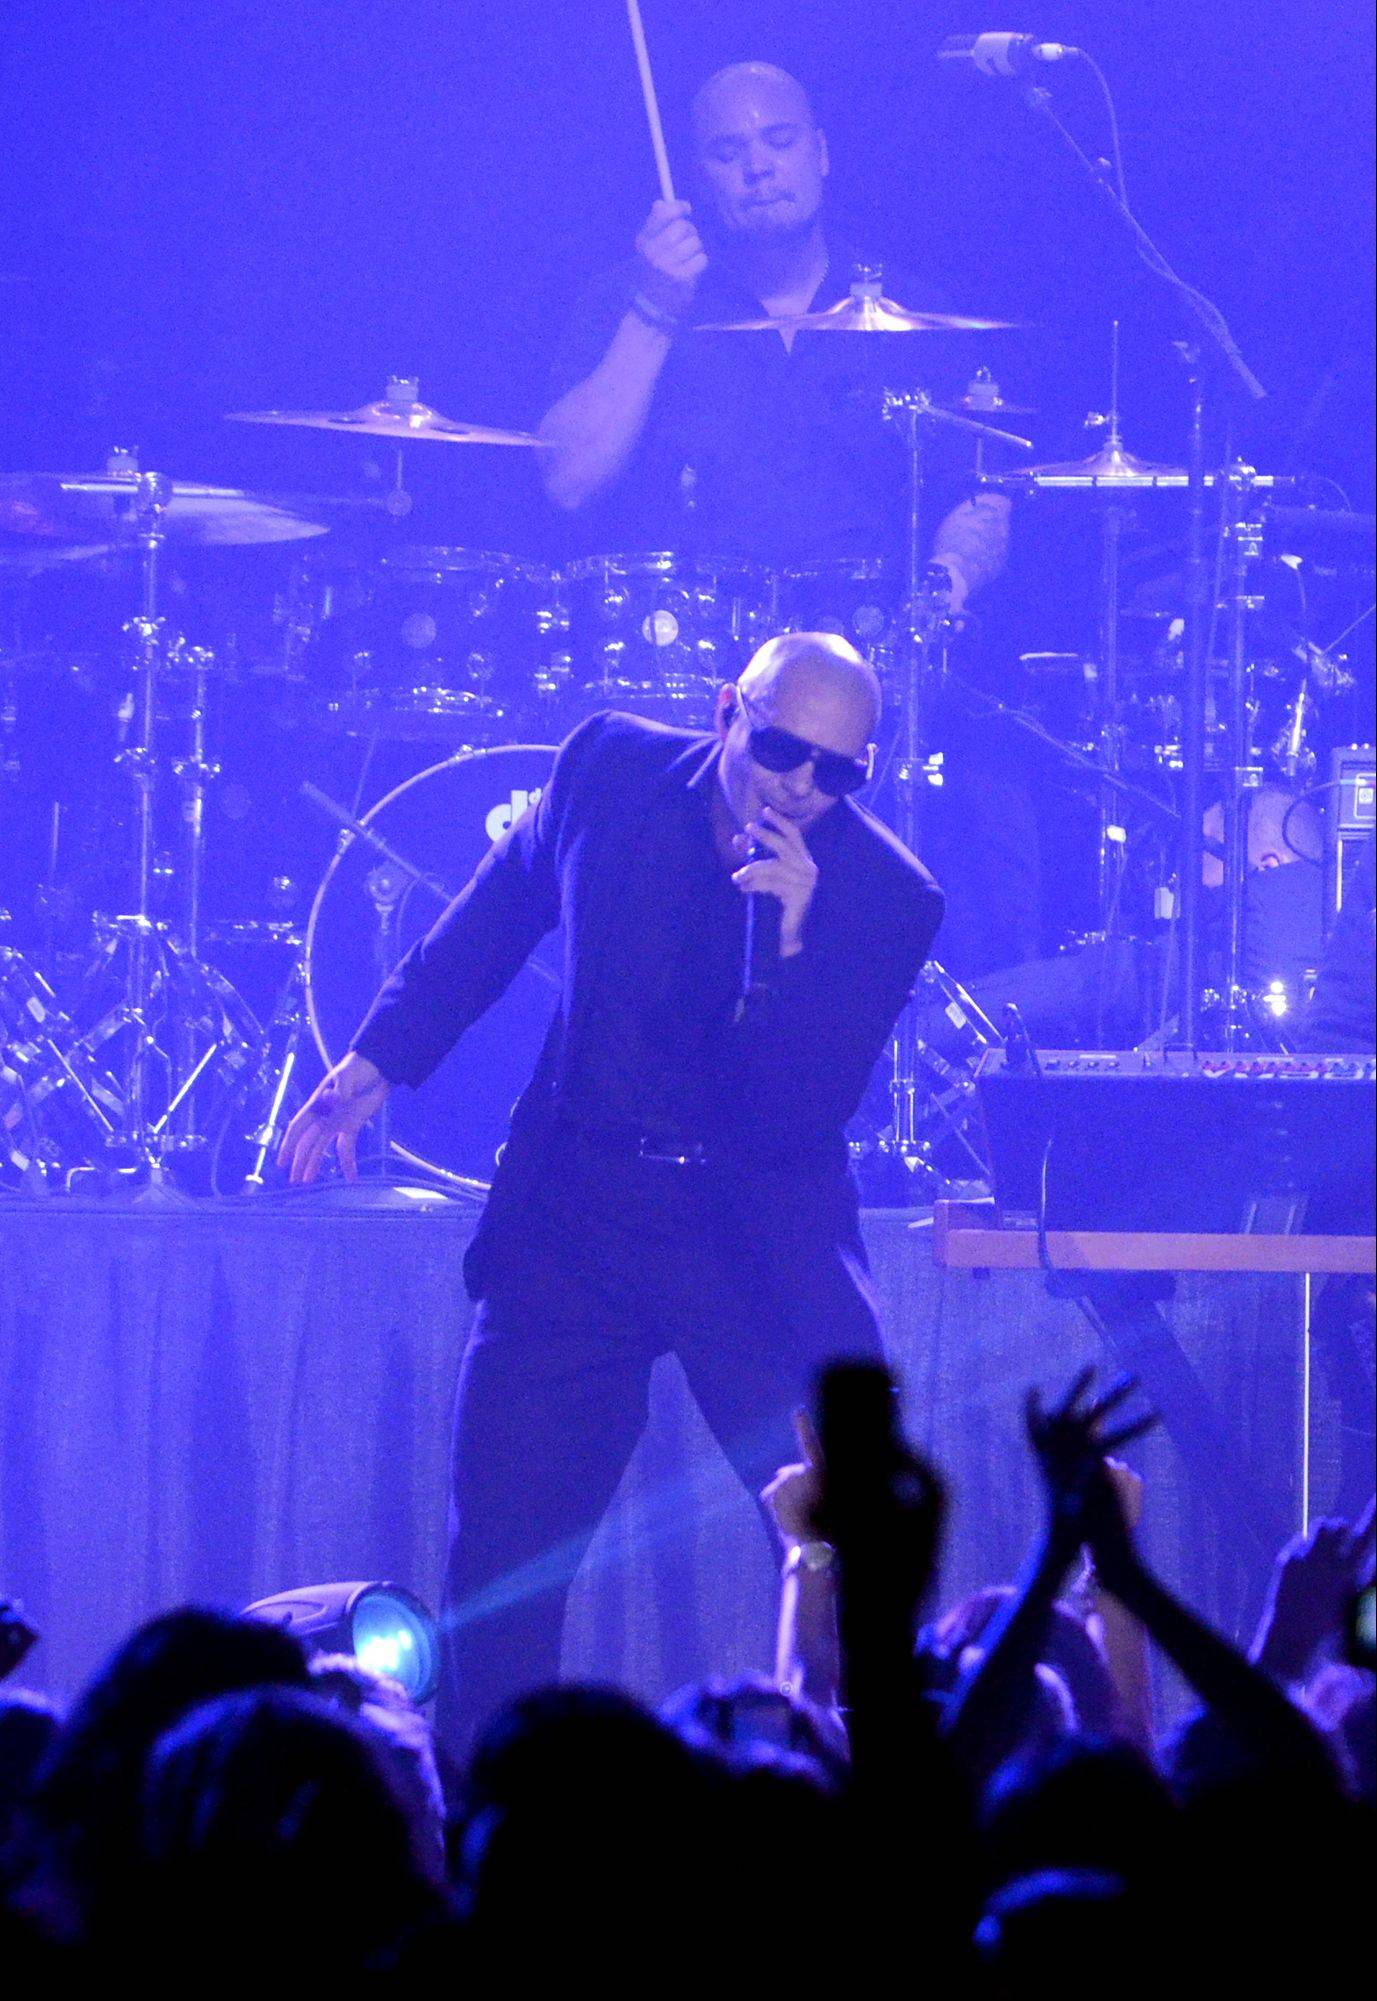 Pitbull performs during the Jingle Bash concert at the Allstate Arena in Rosemont on Saturday, December 15th, 2012.